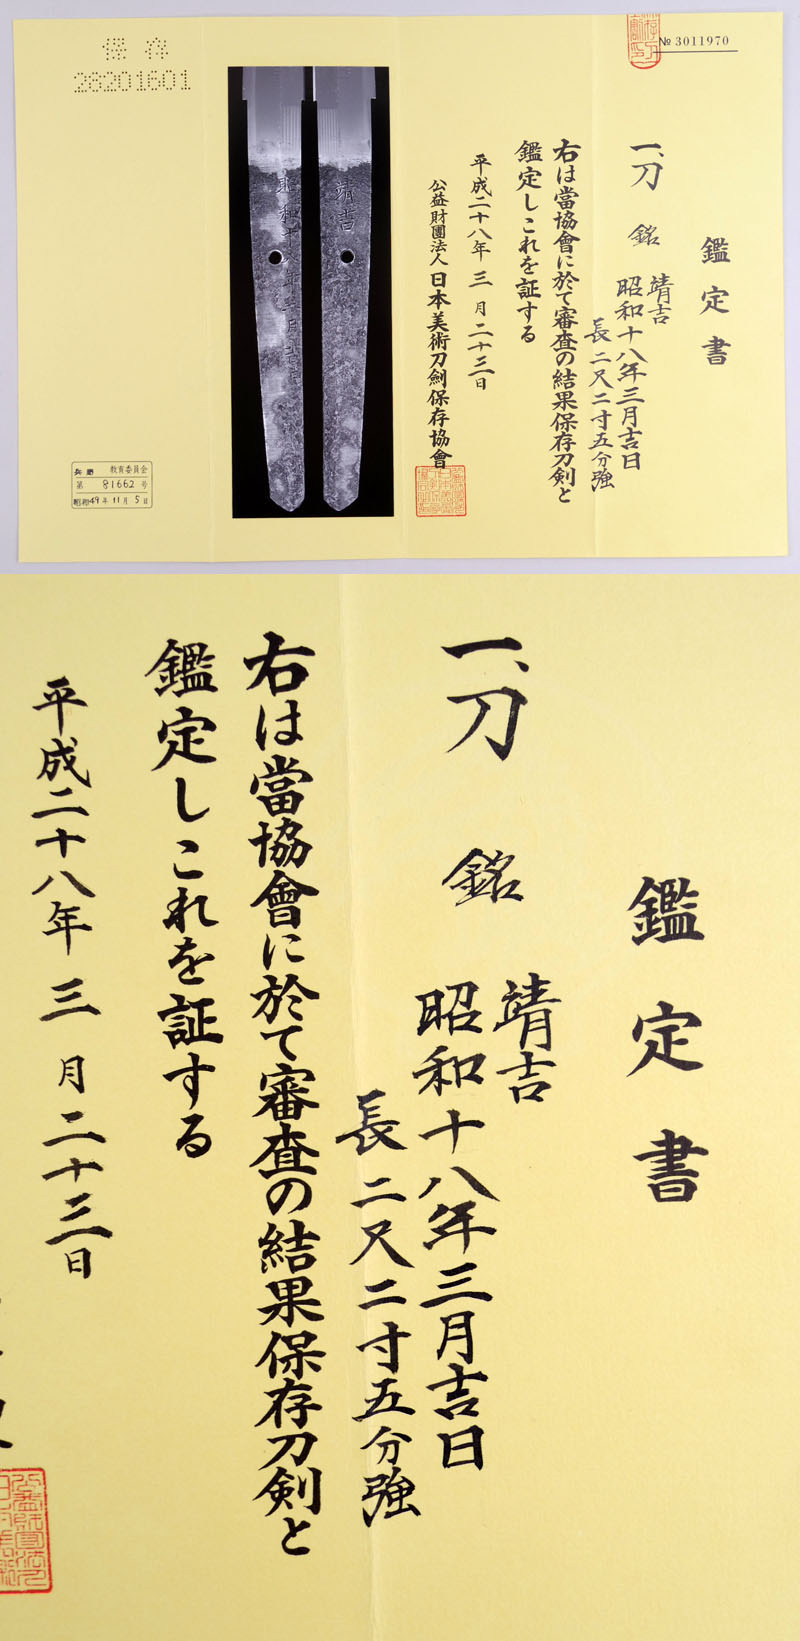 靖吉(靖国刀)(安食 靖吉) Picture of Certificate